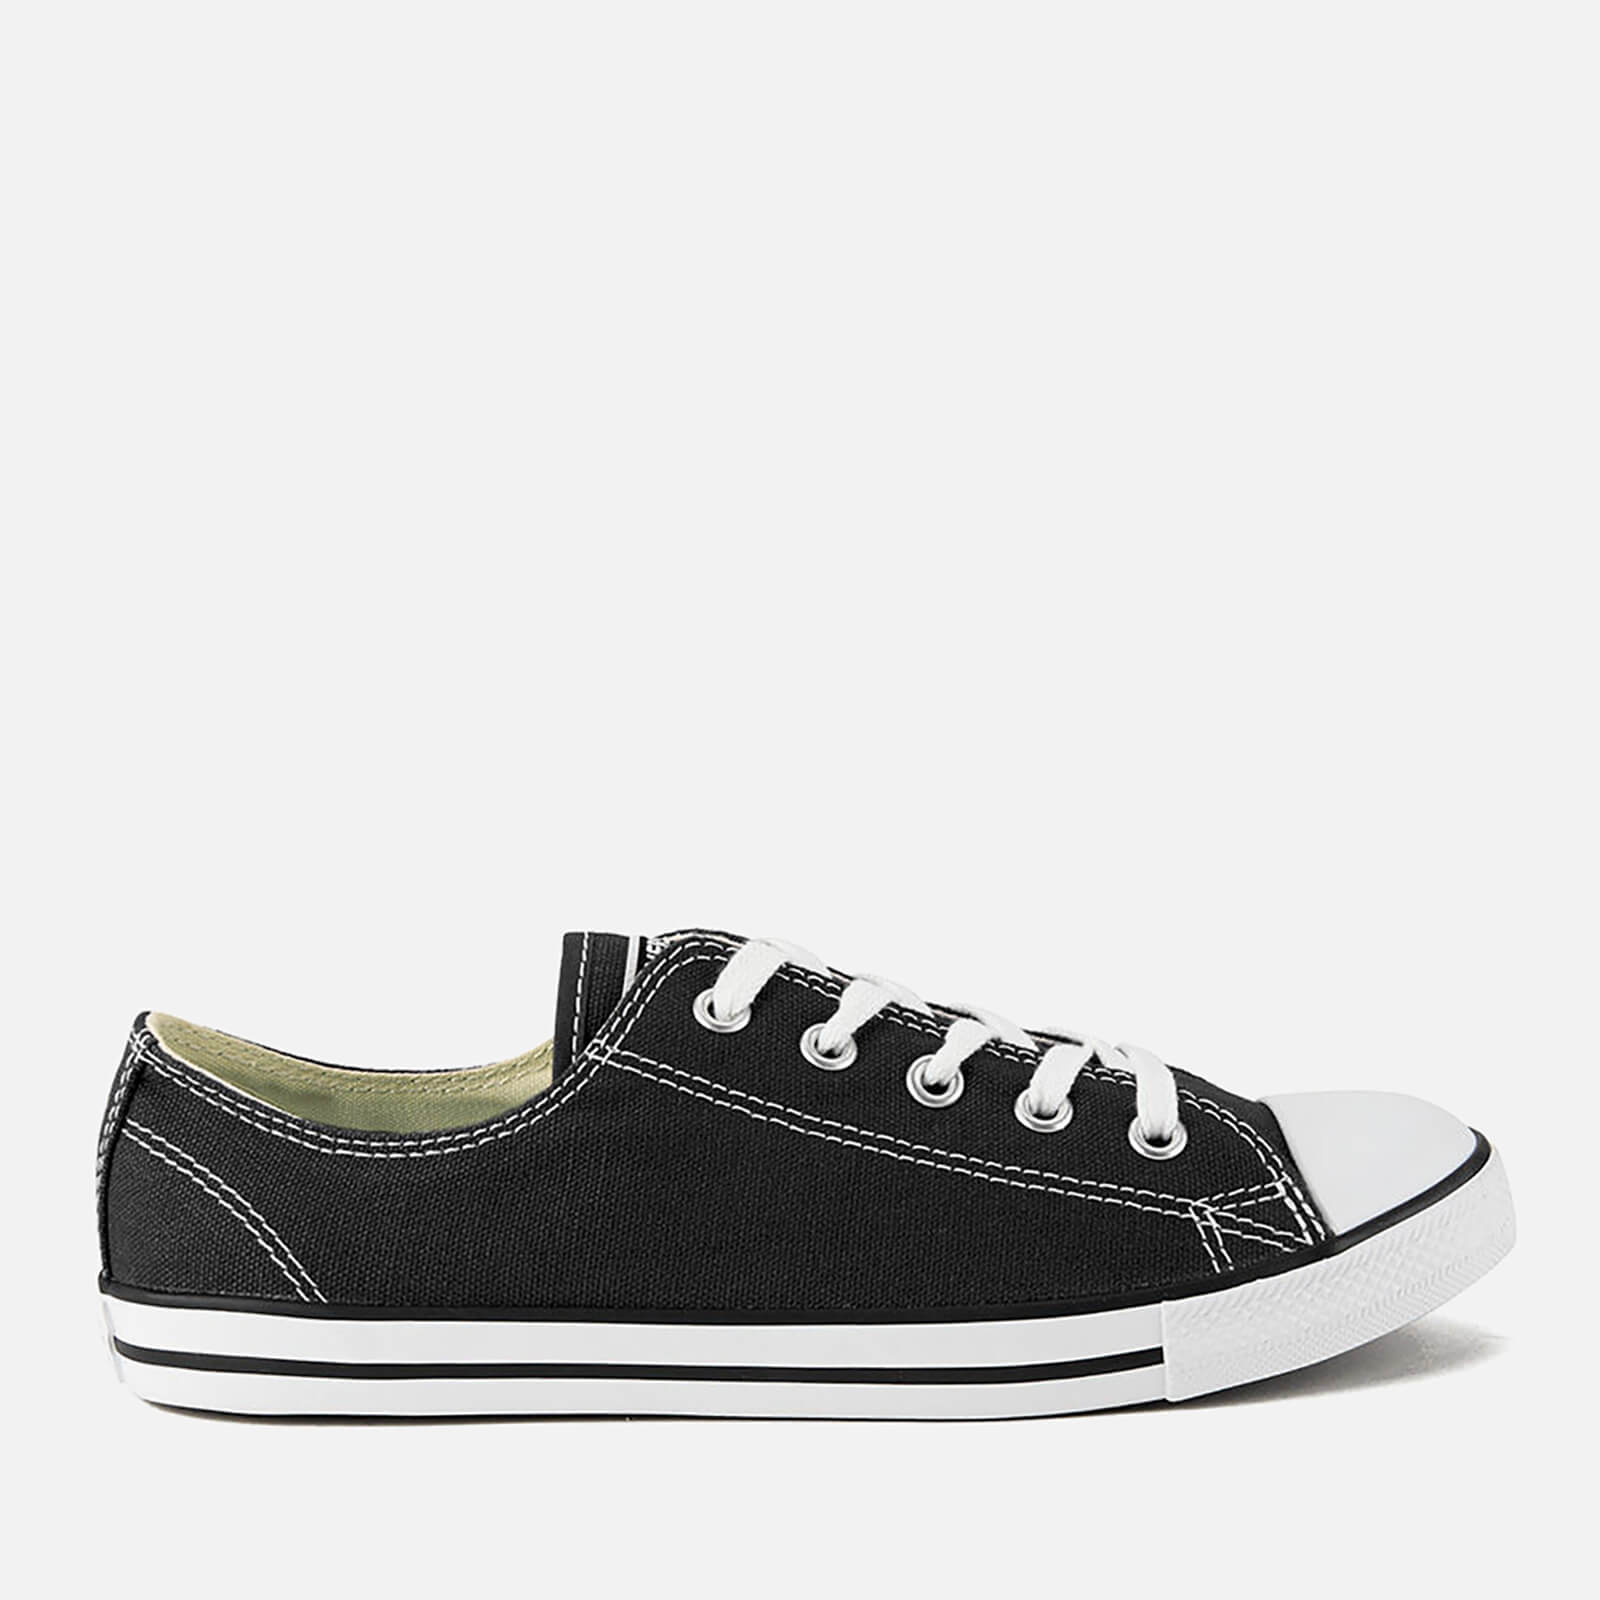 3b253ae39b2592 Converse Women s Chuck Taylor All Star Dainty OX Trainers - Black Womens  Footwear